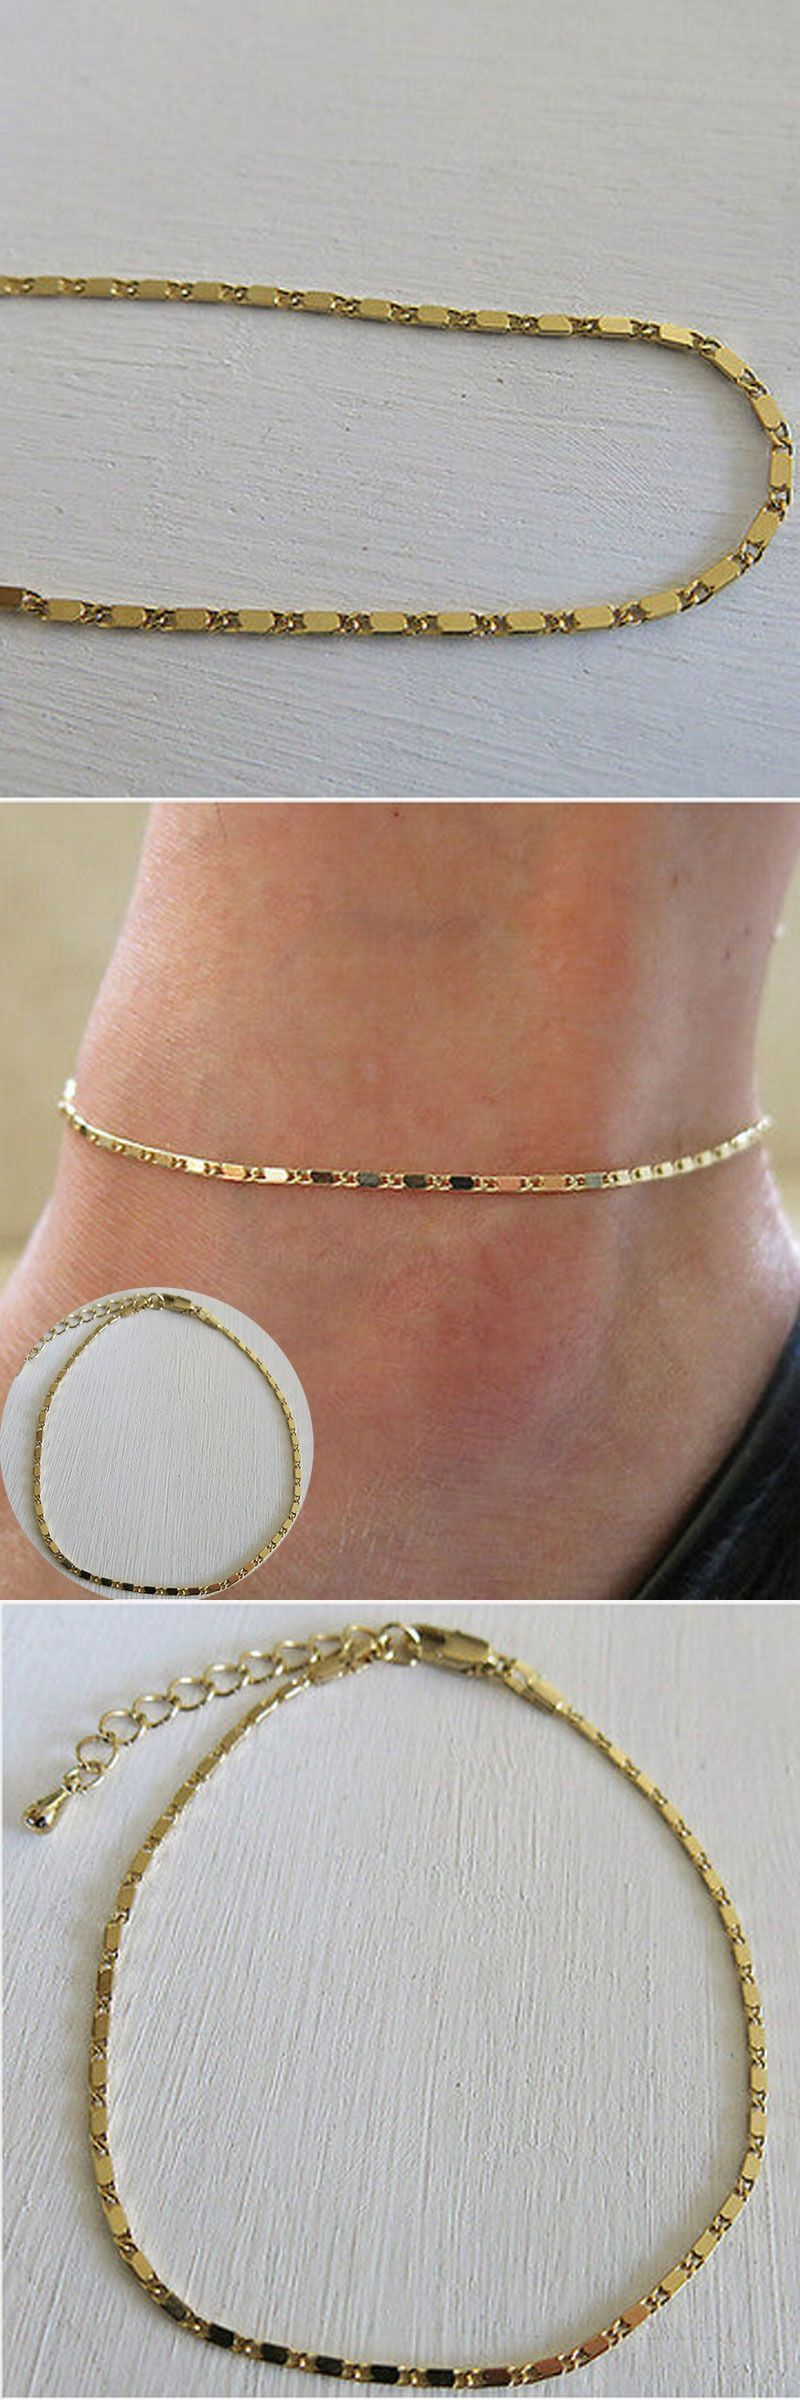 tri anklet oval inch bracelets link adjustable in bracelet pin color ankle gold